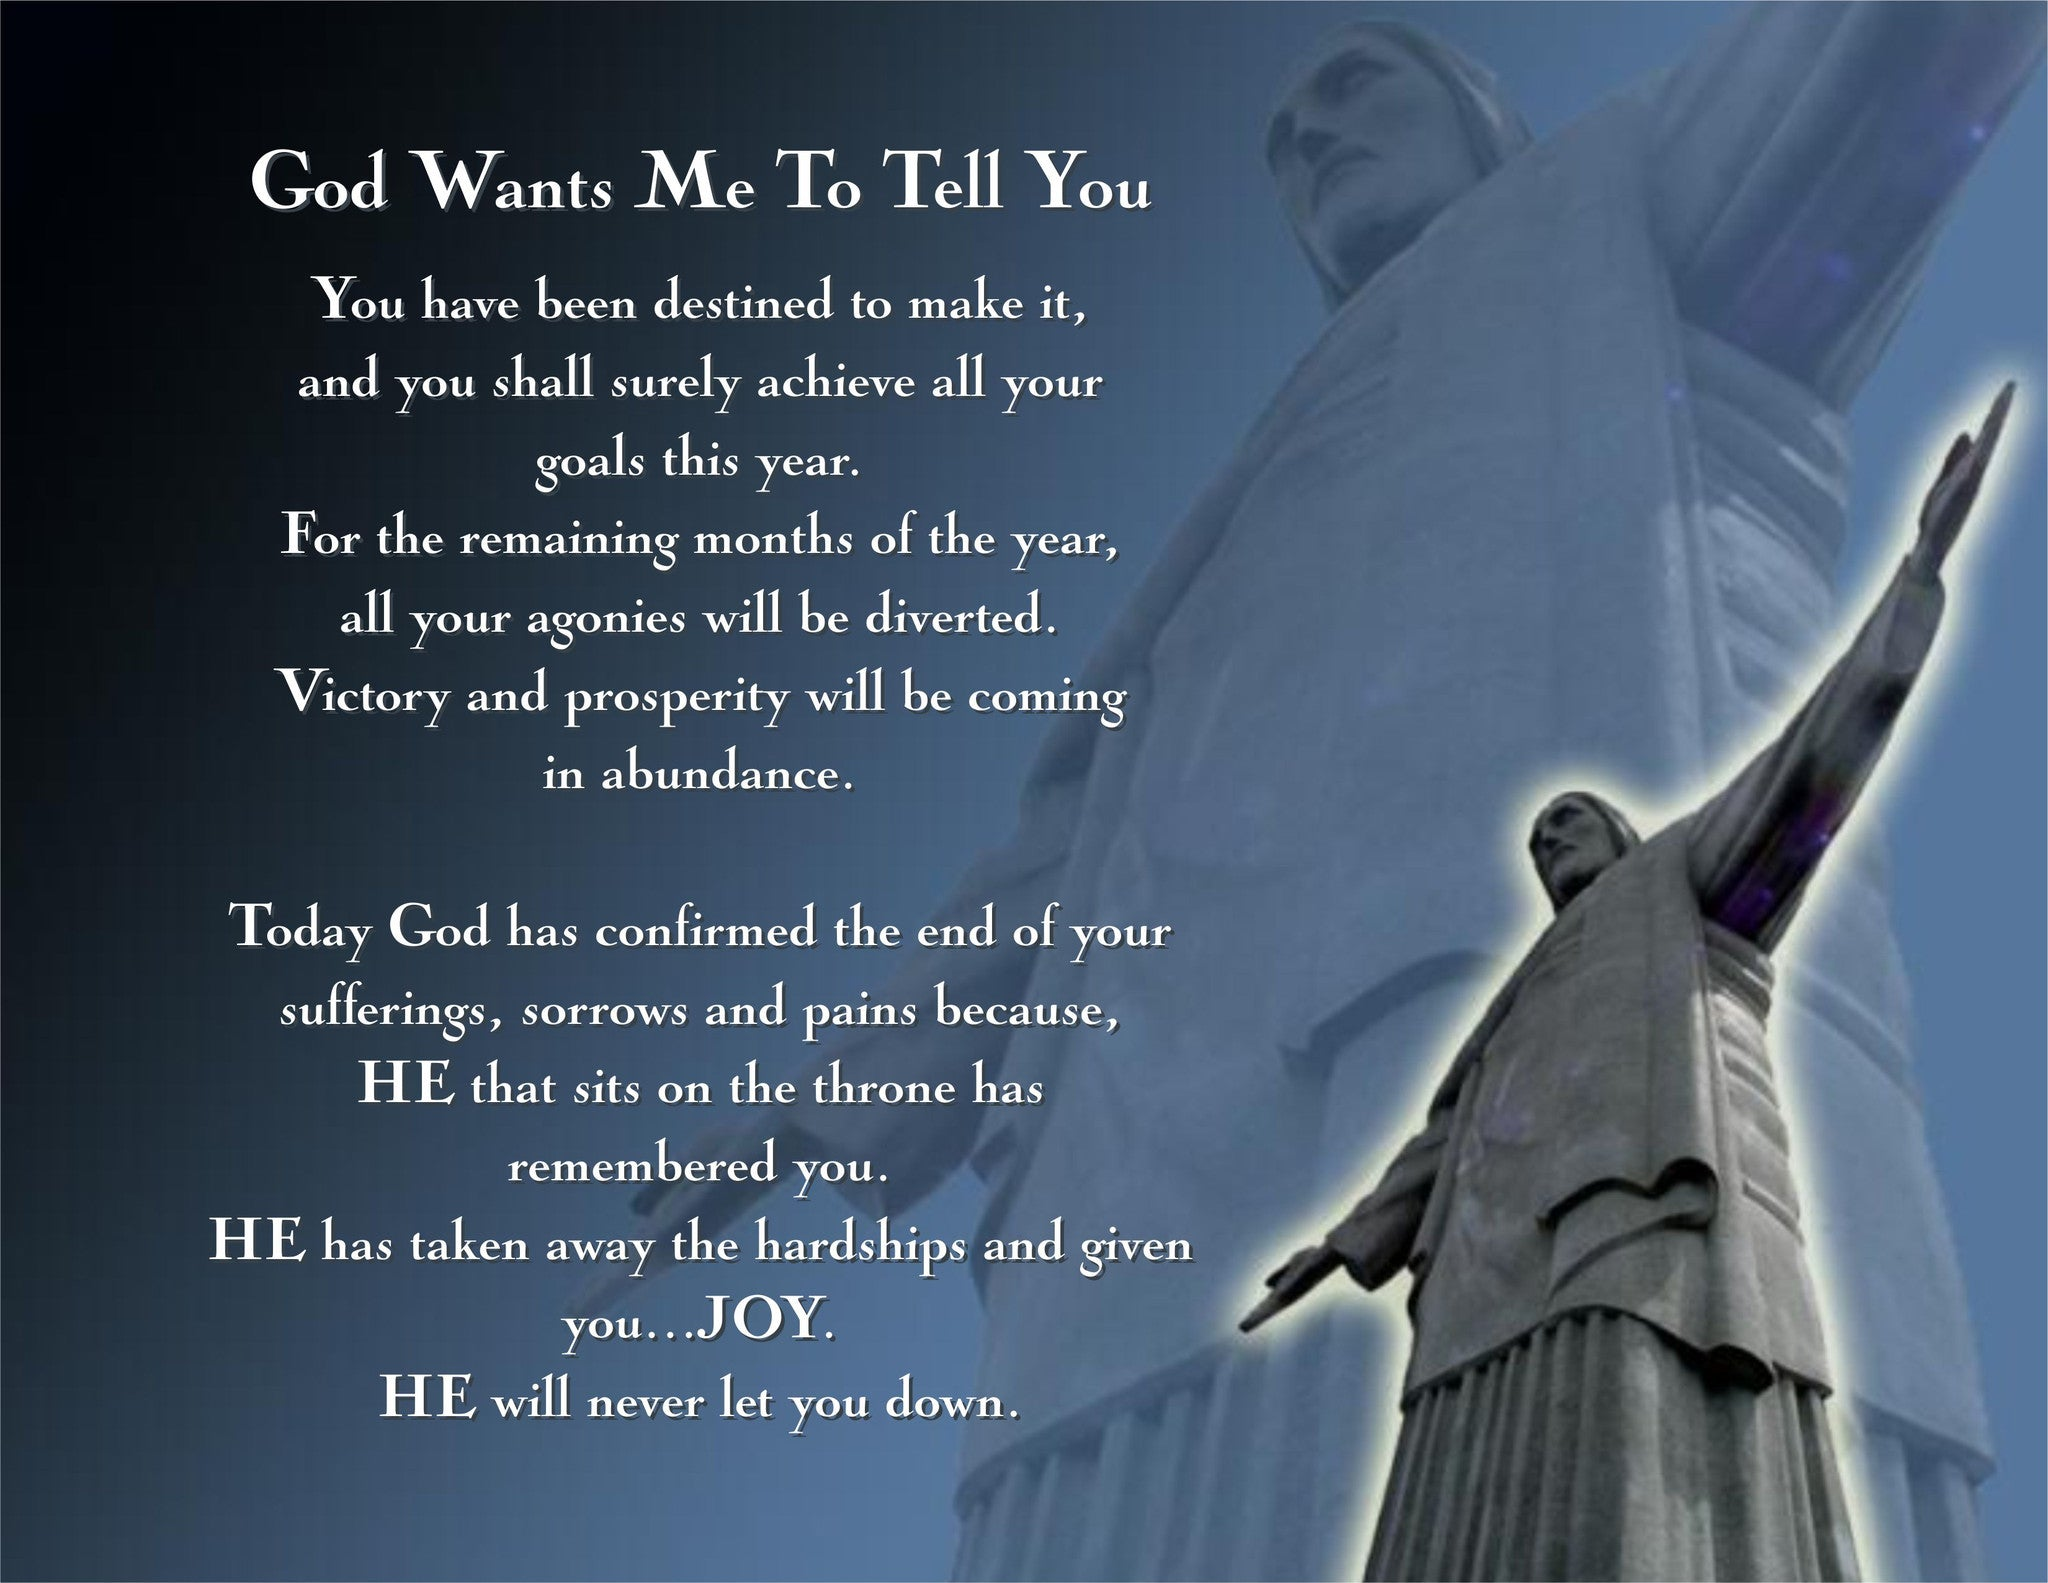 Poem/Pledge, God Wants Me To Tell You